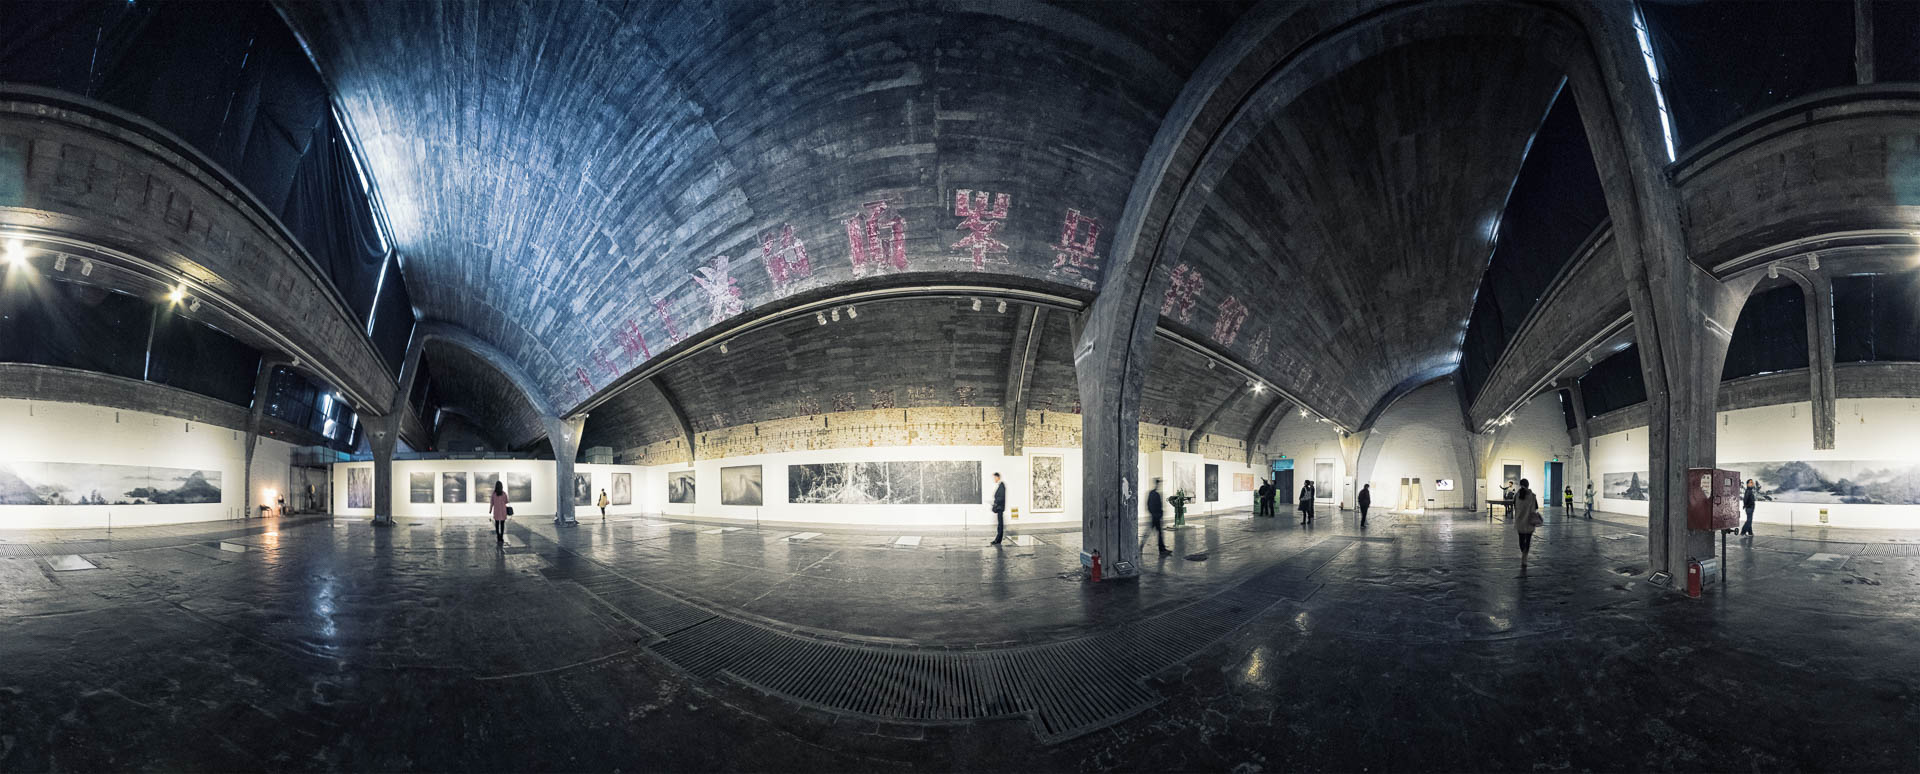 798 Art Space Beijing by Tobi Bohn Panorama 360 Fotograf